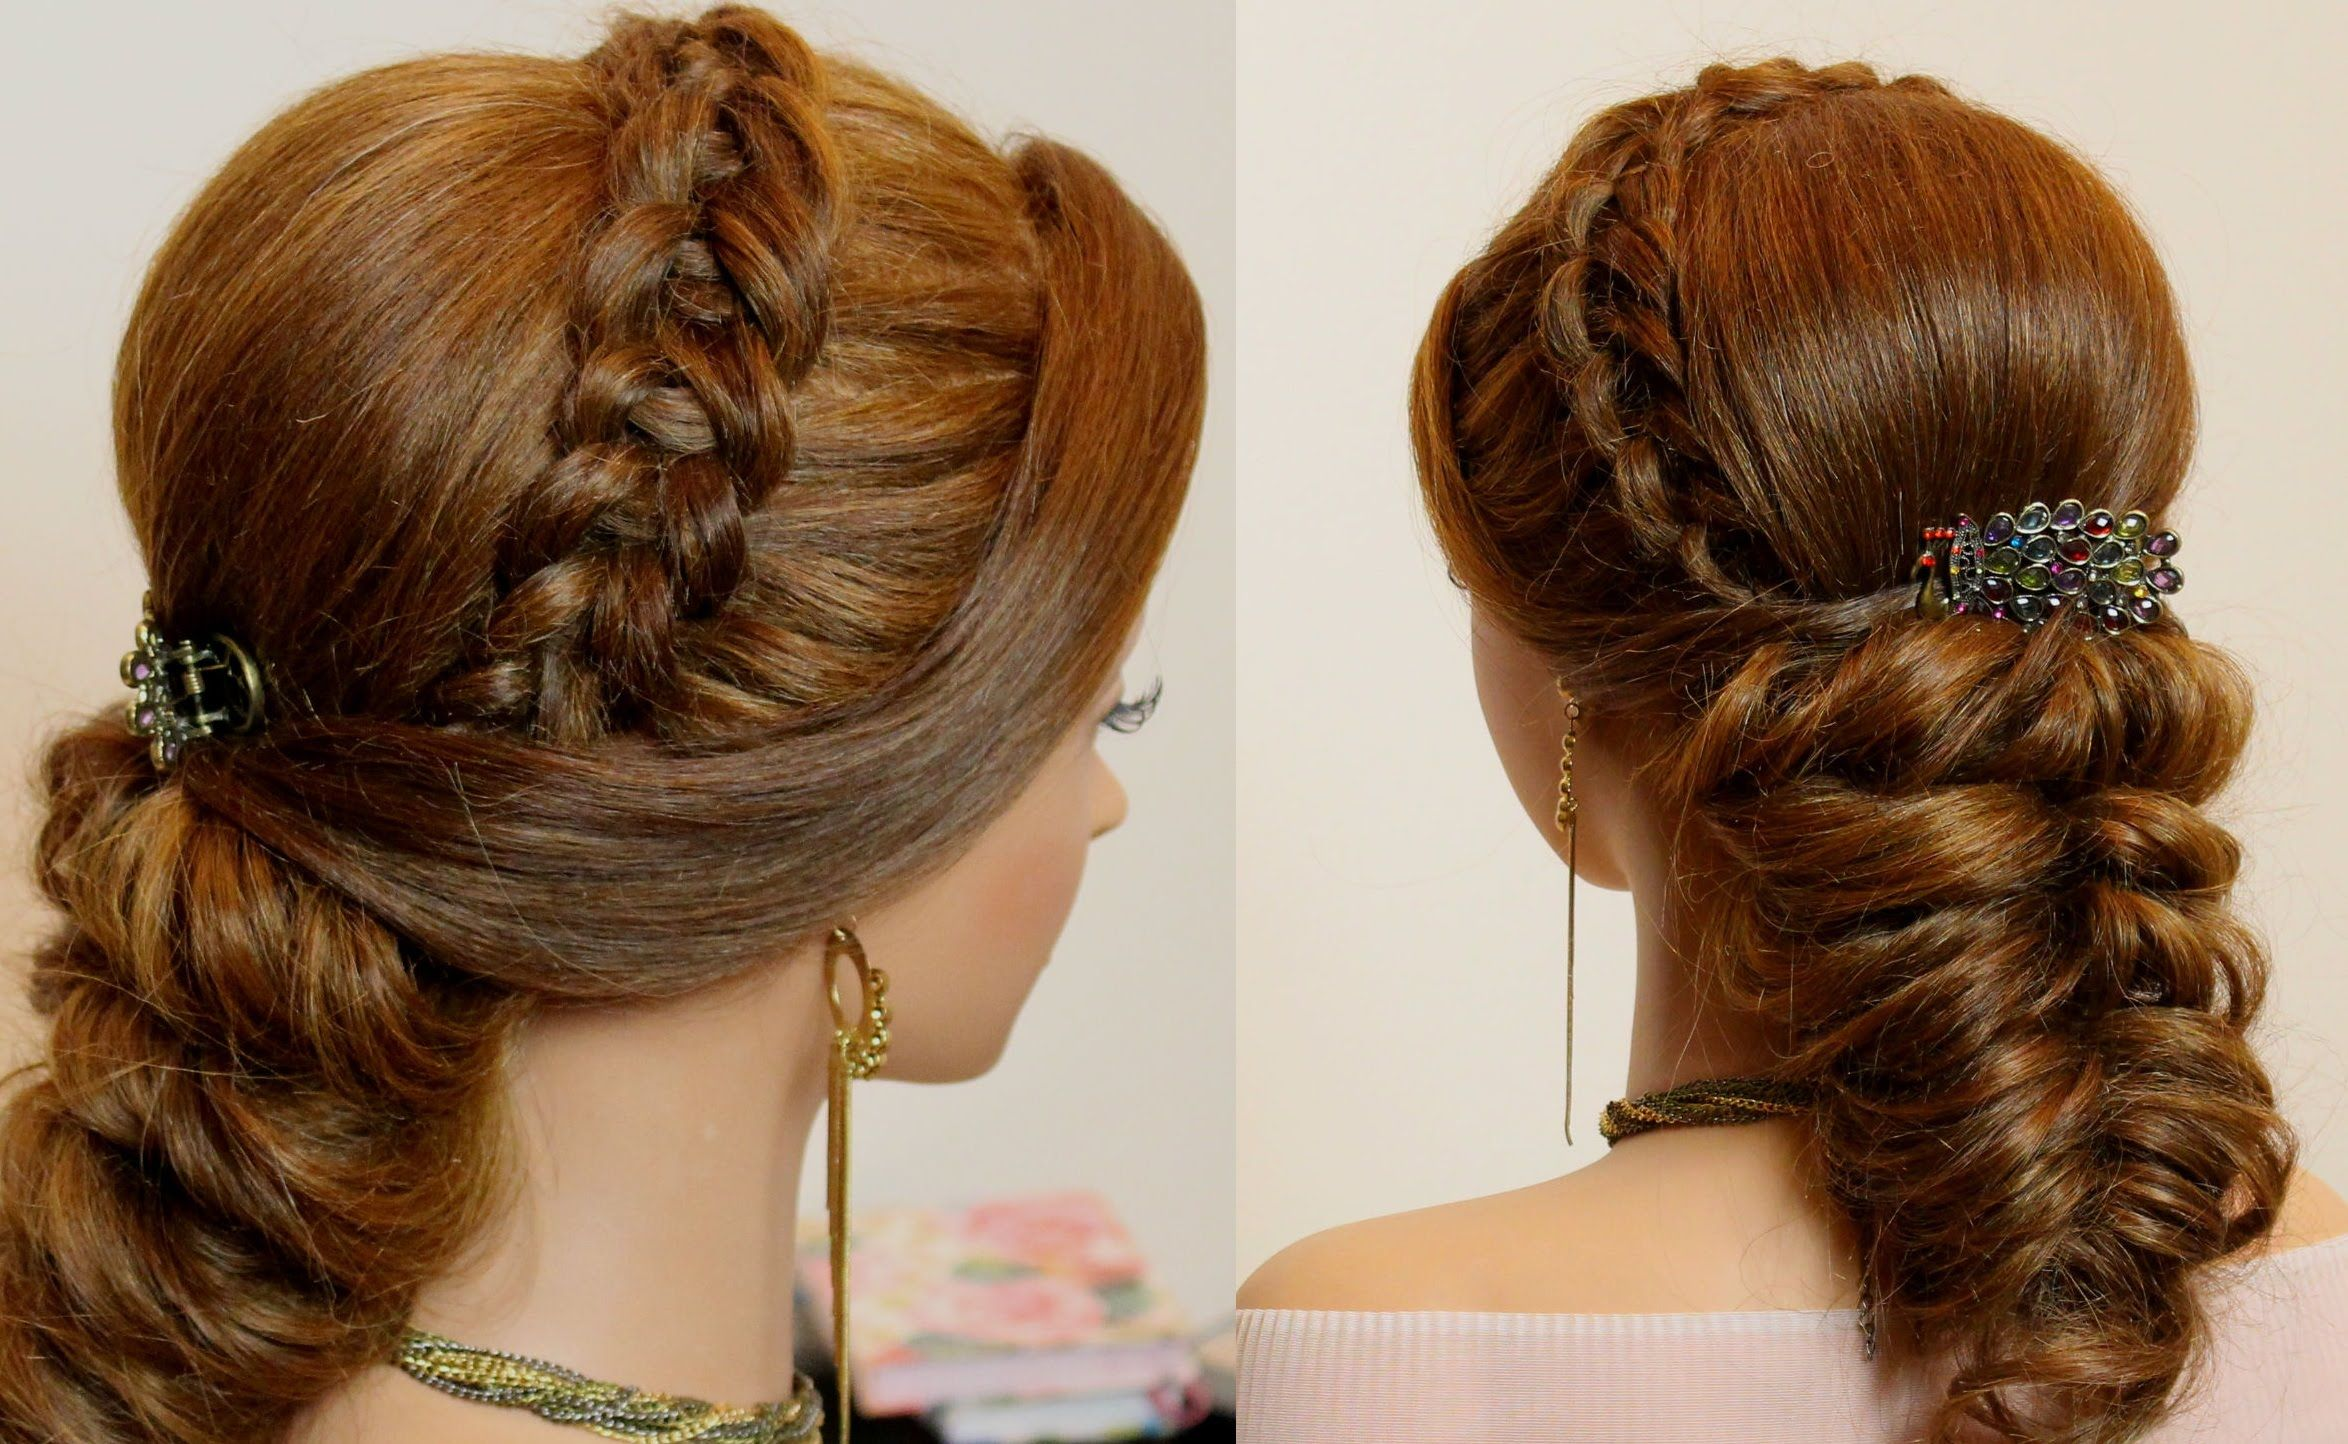 Prom Hairstyles Image Result For High Bun Updo  Head And Hair  Pinterest  Prom